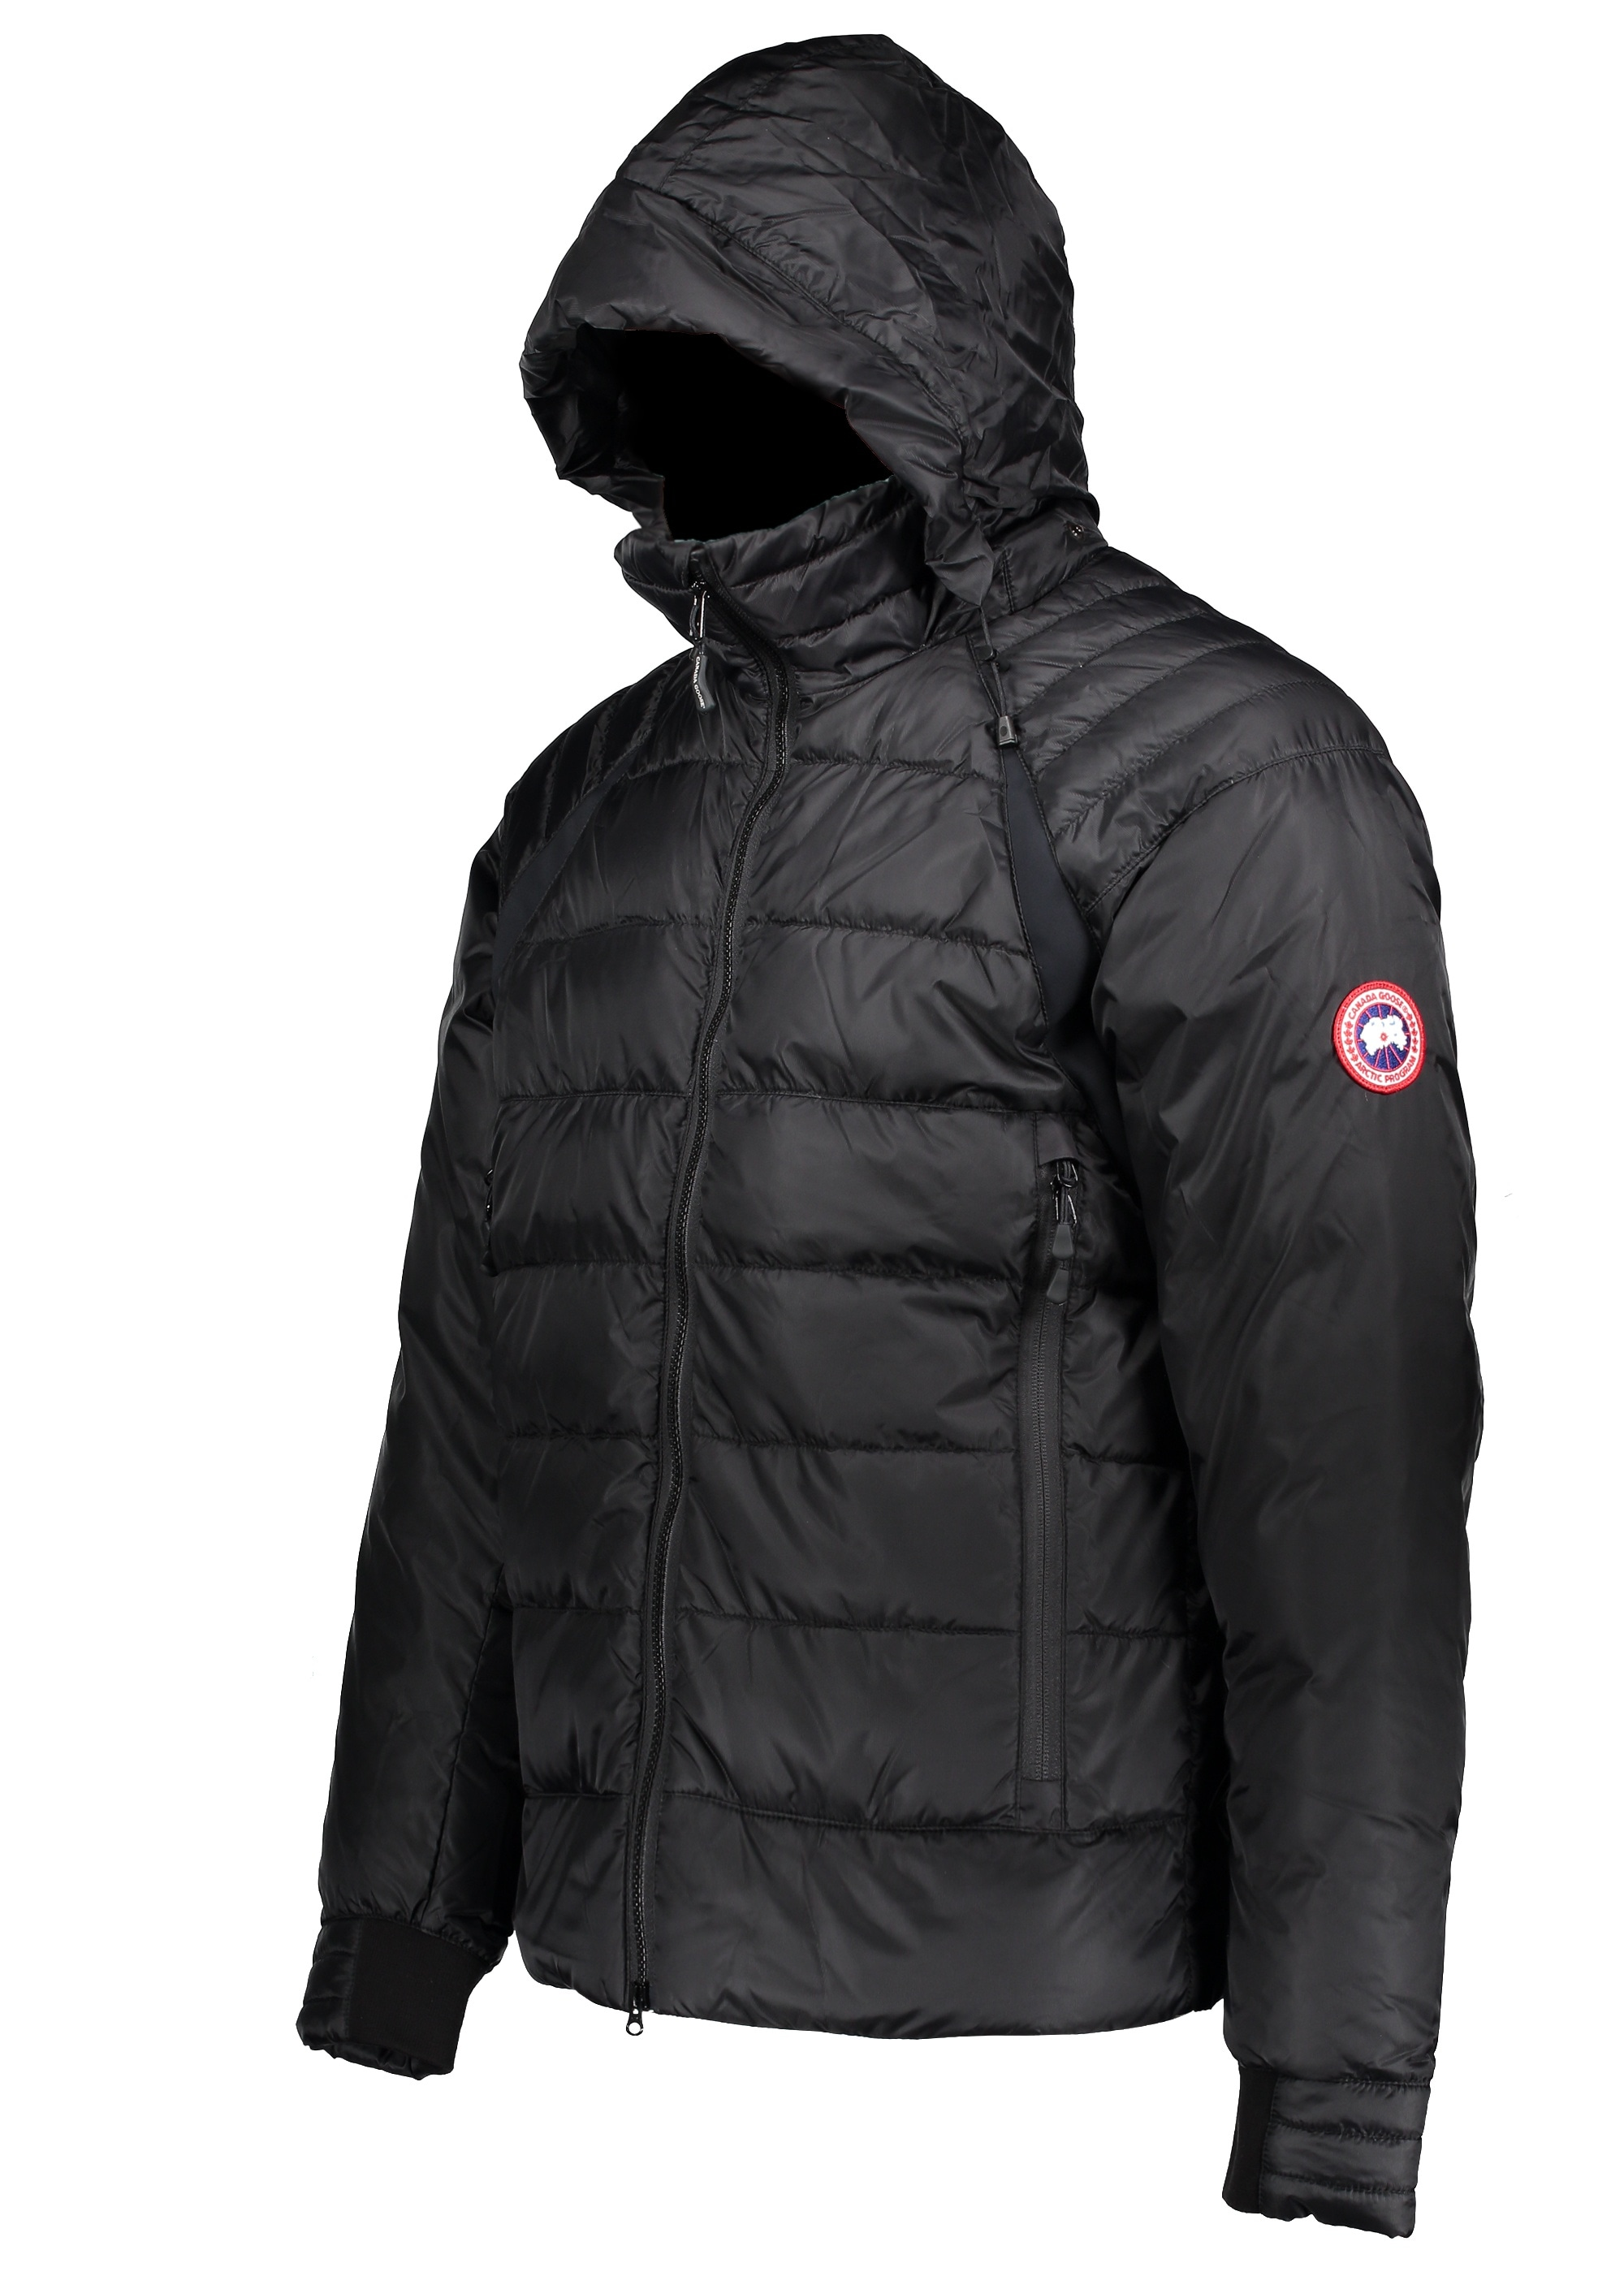 Canada Goose Hybridge Base Jacket - Black - Jackets from Triads UK e51a1b76c